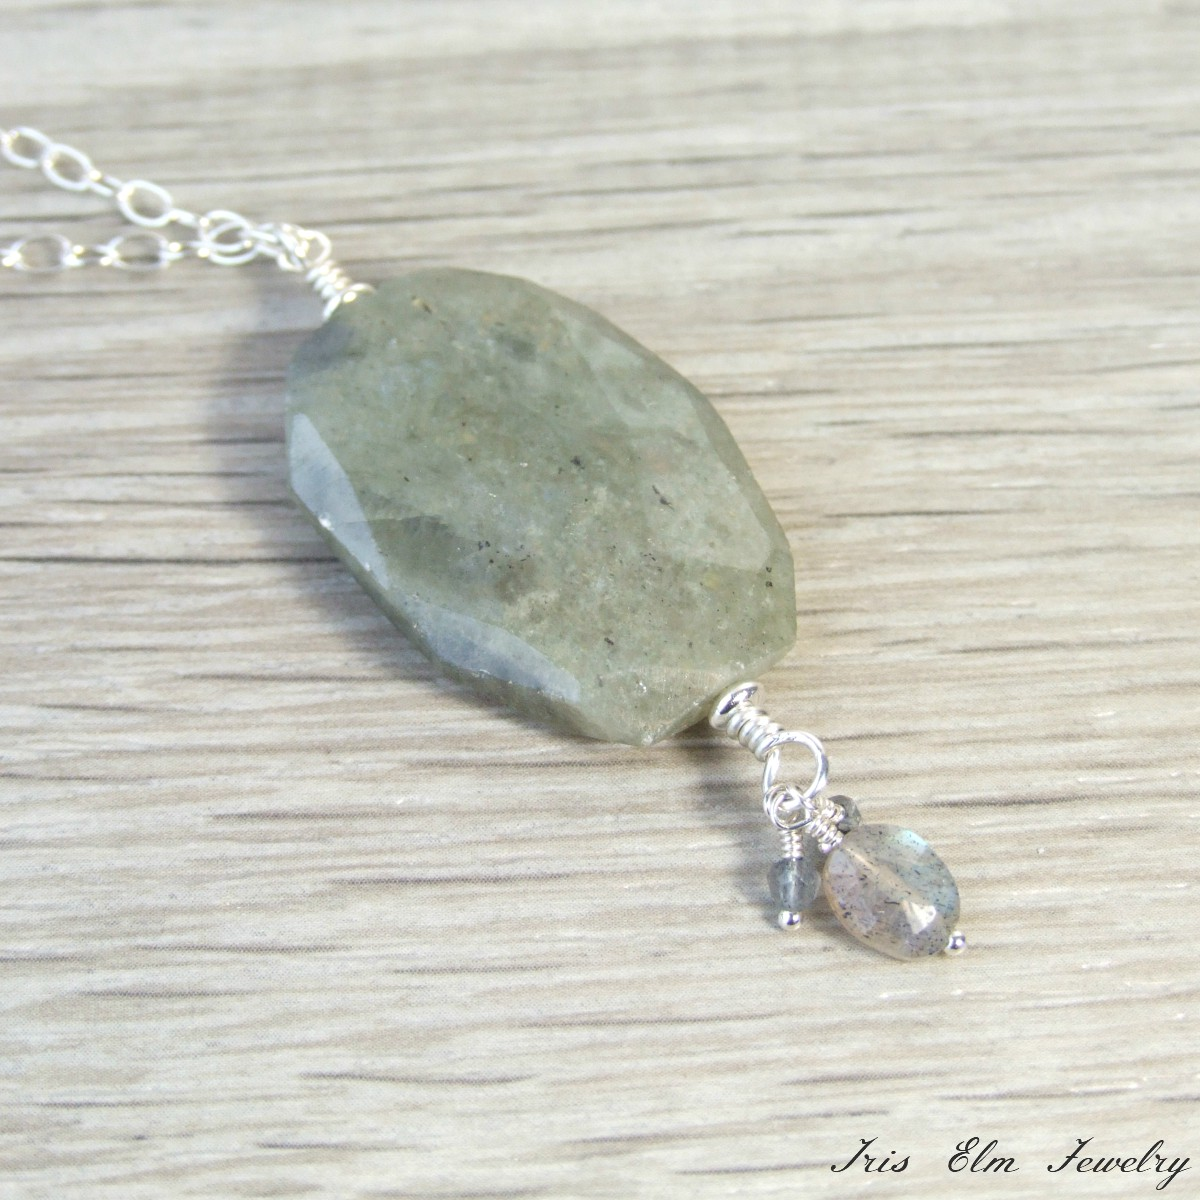 inches necklace chain blue flash products silver img stone natural on labradorite sterling pendant